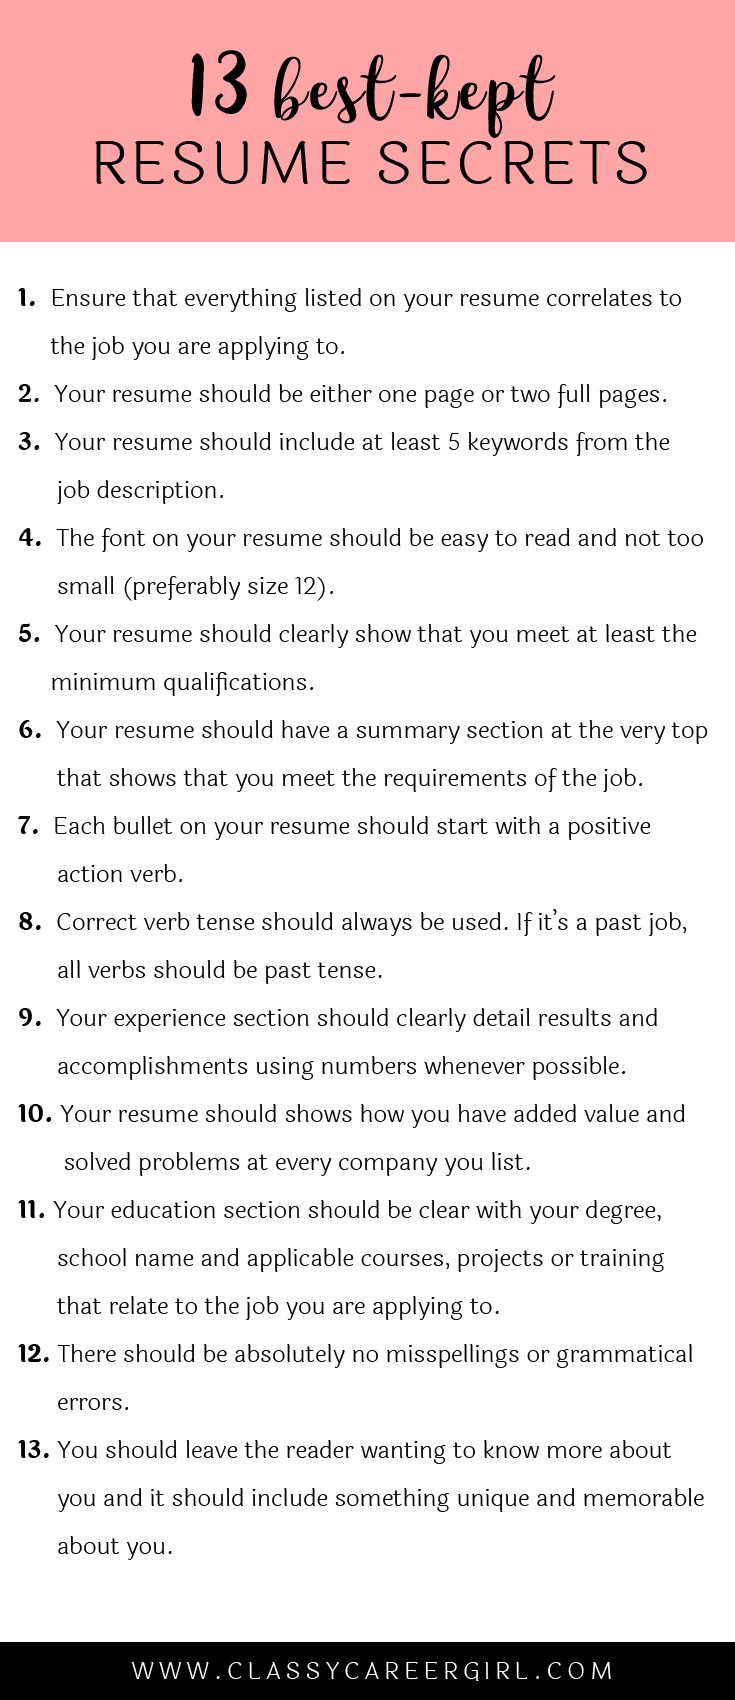 Opposenewapstandardsus  Terrific  Ideas About Resume On Pinterest  Cv Format Resume Cv And  With Outstanding Some Hiring Managers Will Toss Your Resume Out If You Dont Know These  With Endearing Resume Online Also Education On Resume In Addition Livecareer Resume Builder And Resume For College Student As Well As Free Resume Creator Additionally Free Resume Builder Online From Pinterestcom With Opposenewapstandardsus  Outstanding  Ideas About Resume On Pinterest  Cv Format Resume Cv And  With Endearing Some Hiring Managers Will Toss Your Resume Out If You Dont Know These  And Terrific Resume Online Also Education On Resume In Addition Livecareer Resume Builder From Pinterestcom